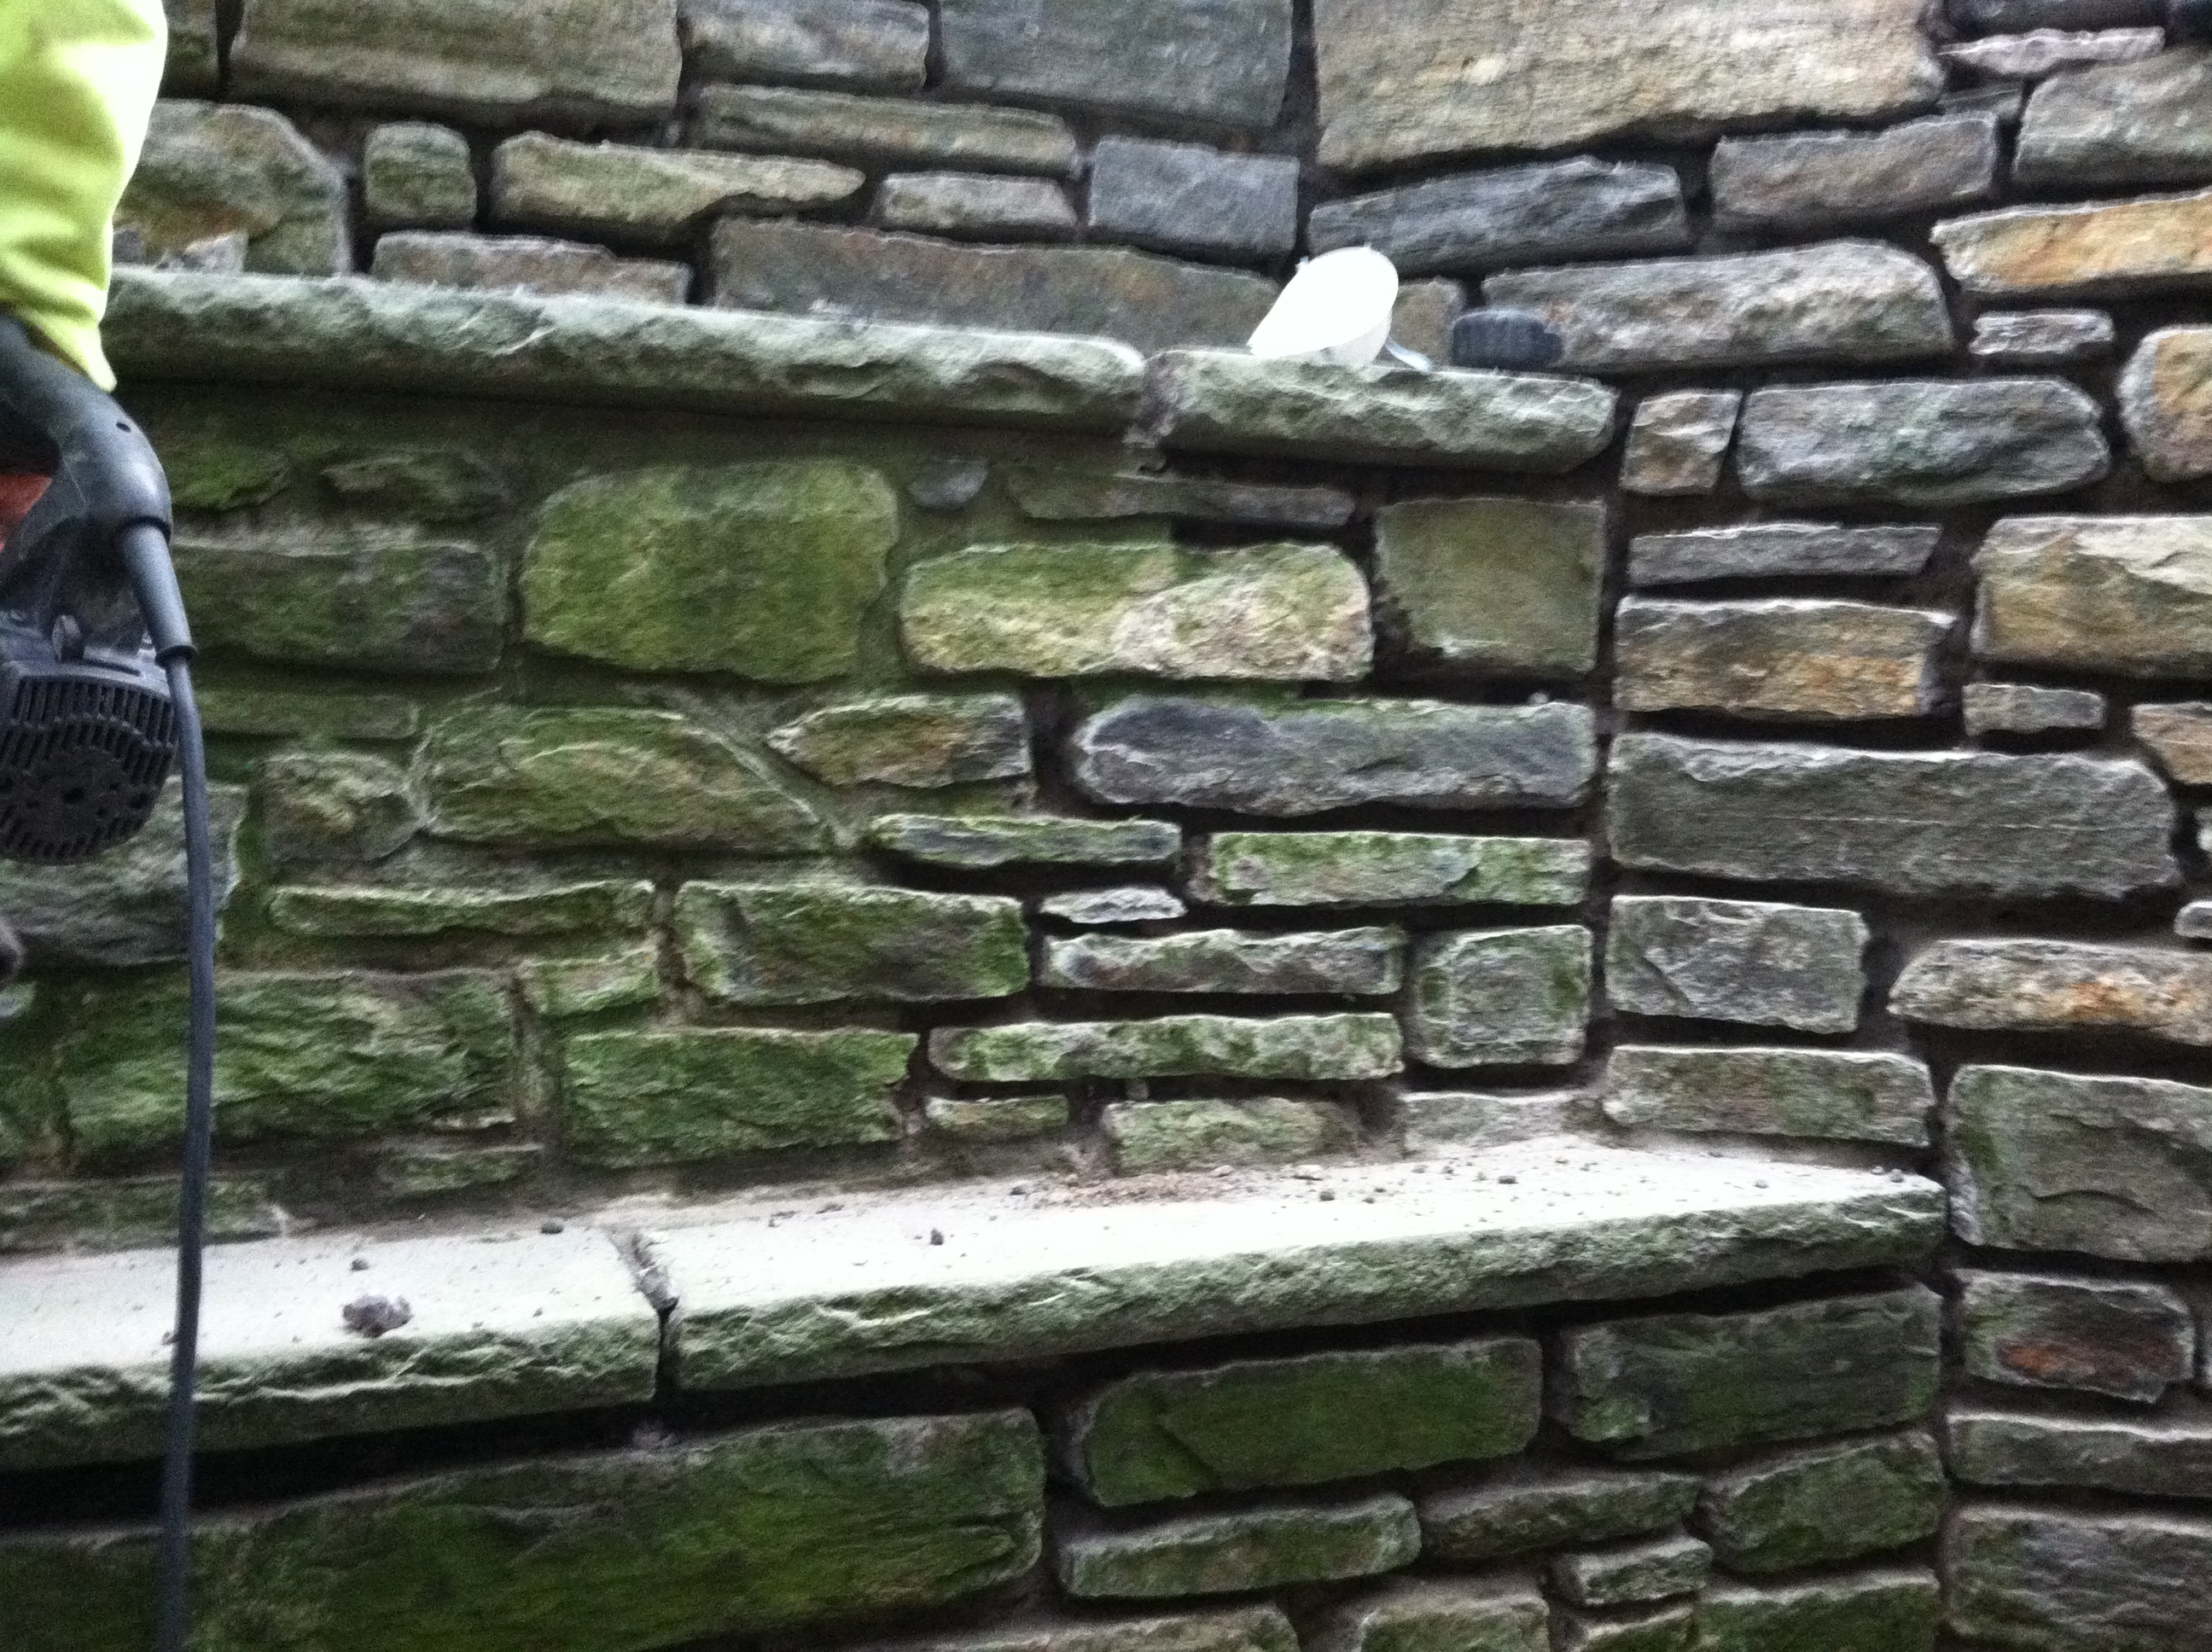 Restorating Stone work in western ny